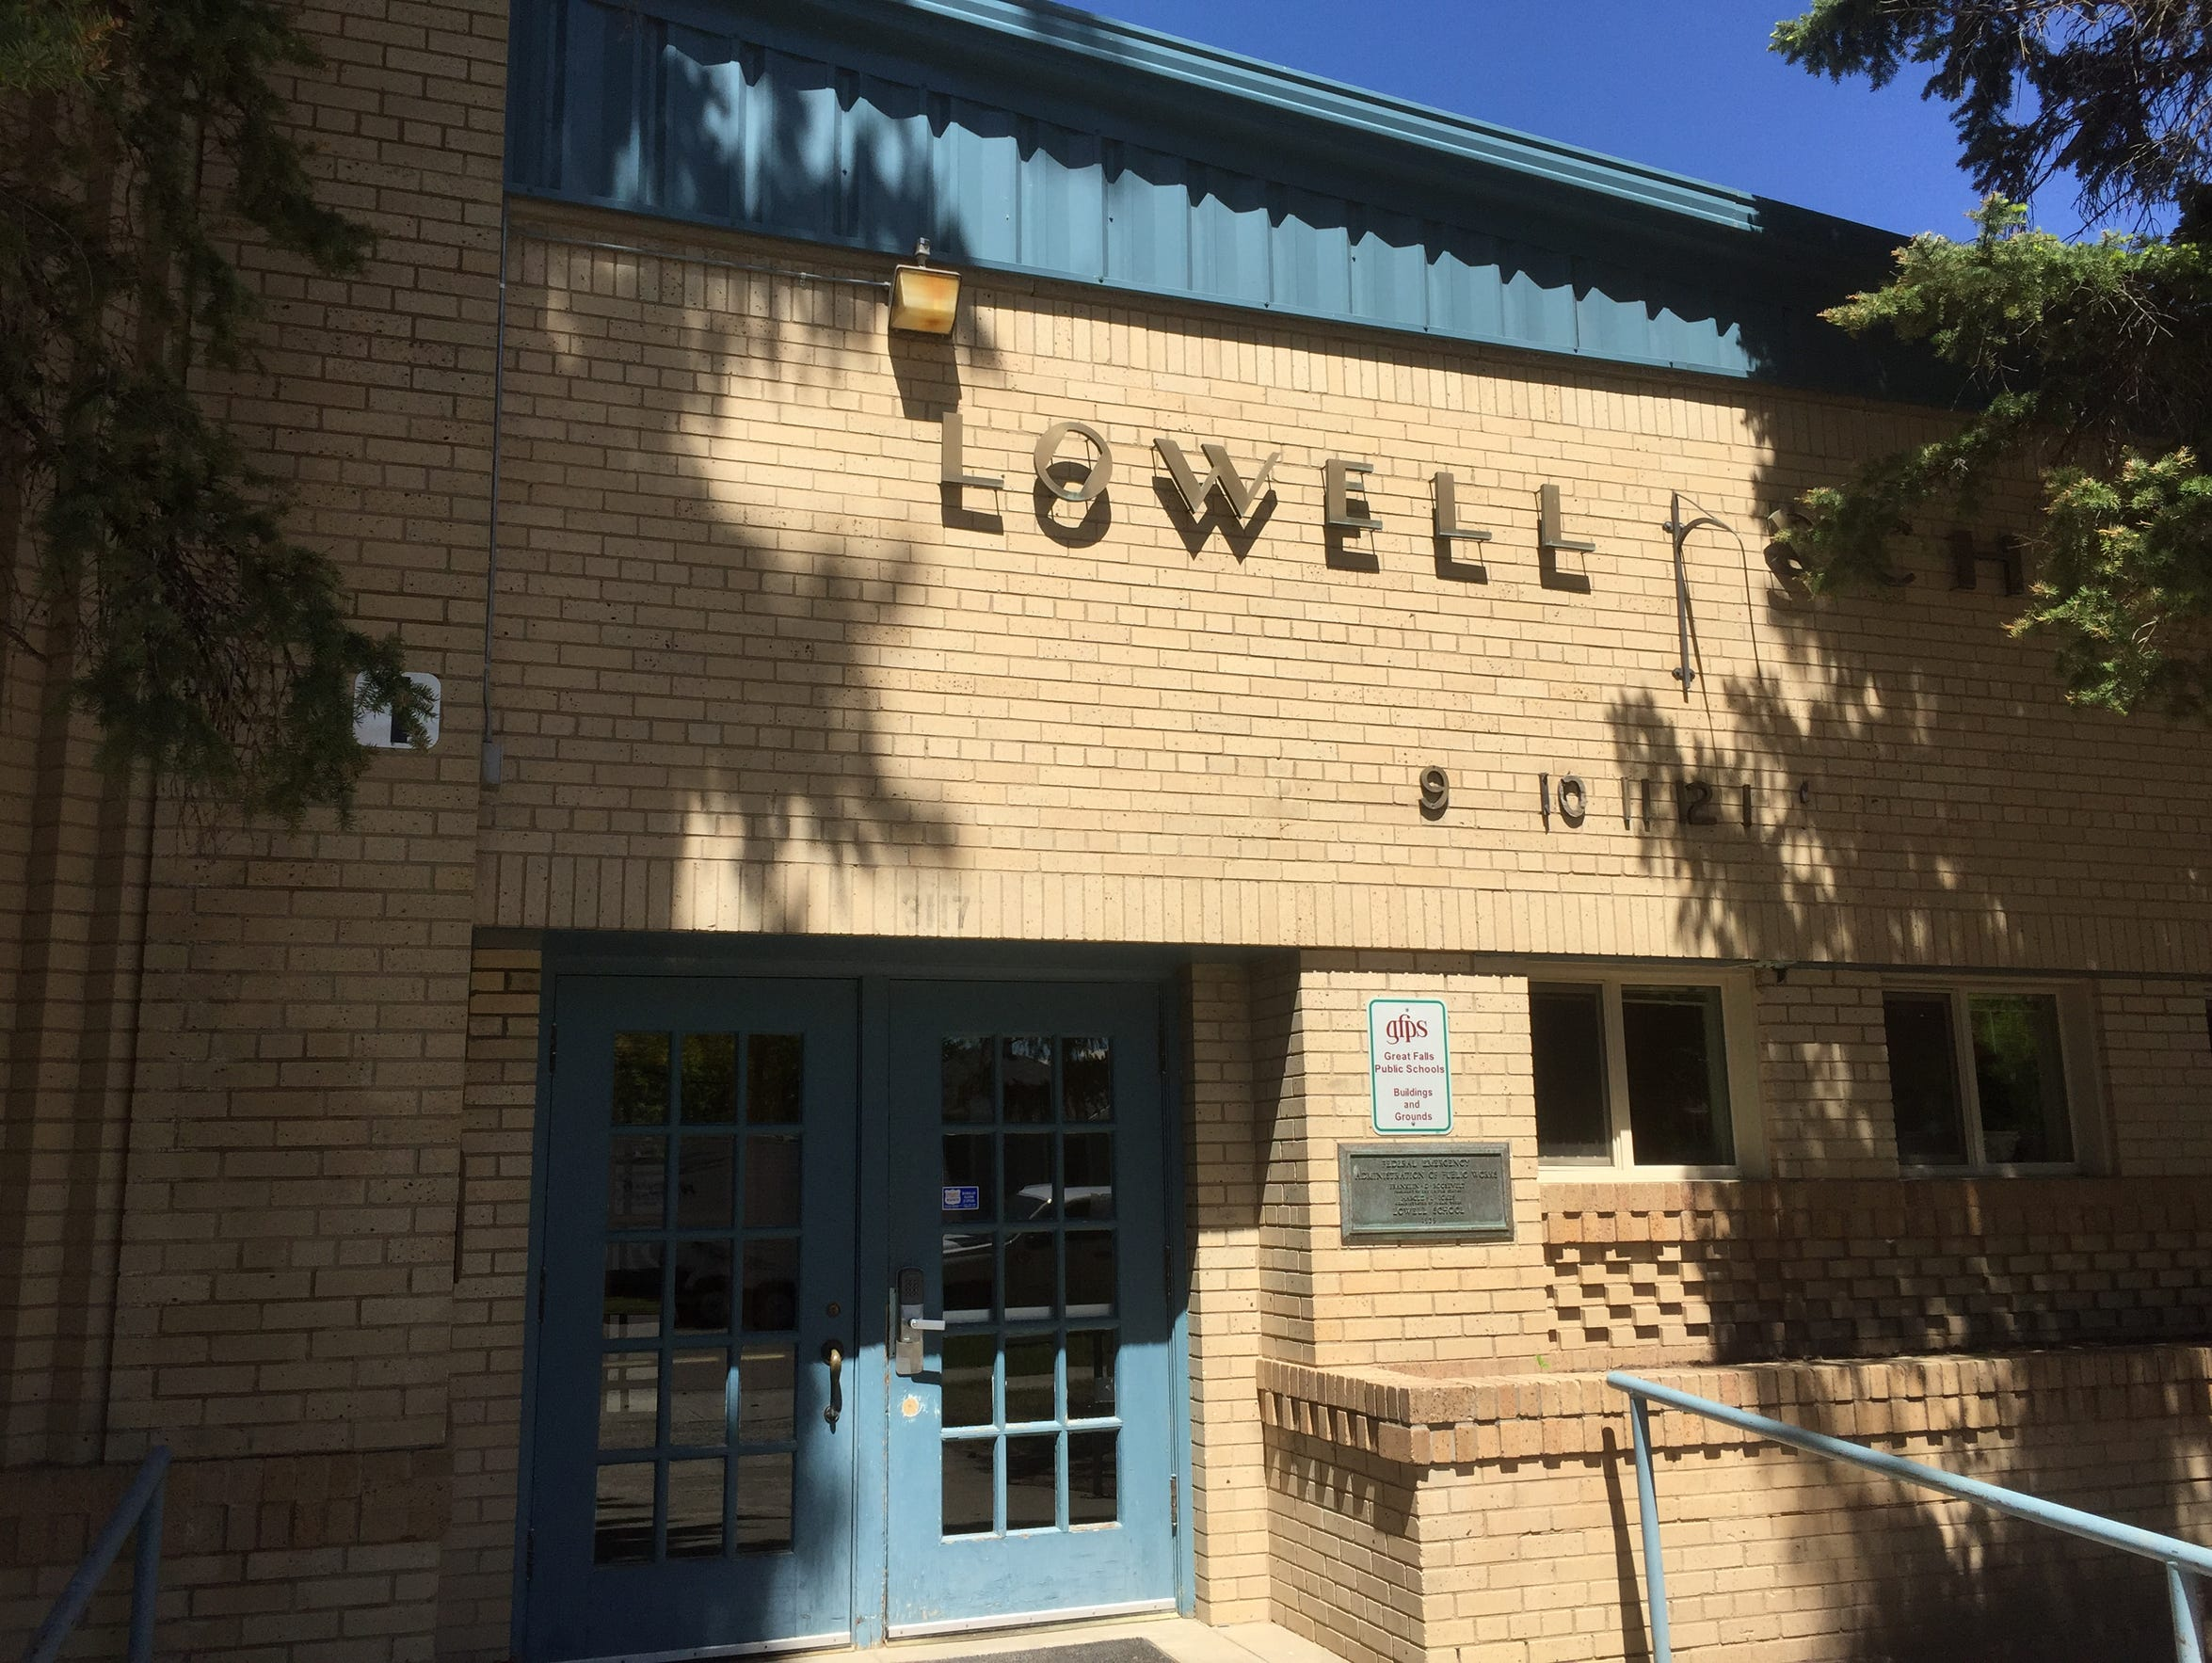 Lowell Elementary, 3117 5th Ave. N., opened in 1939;